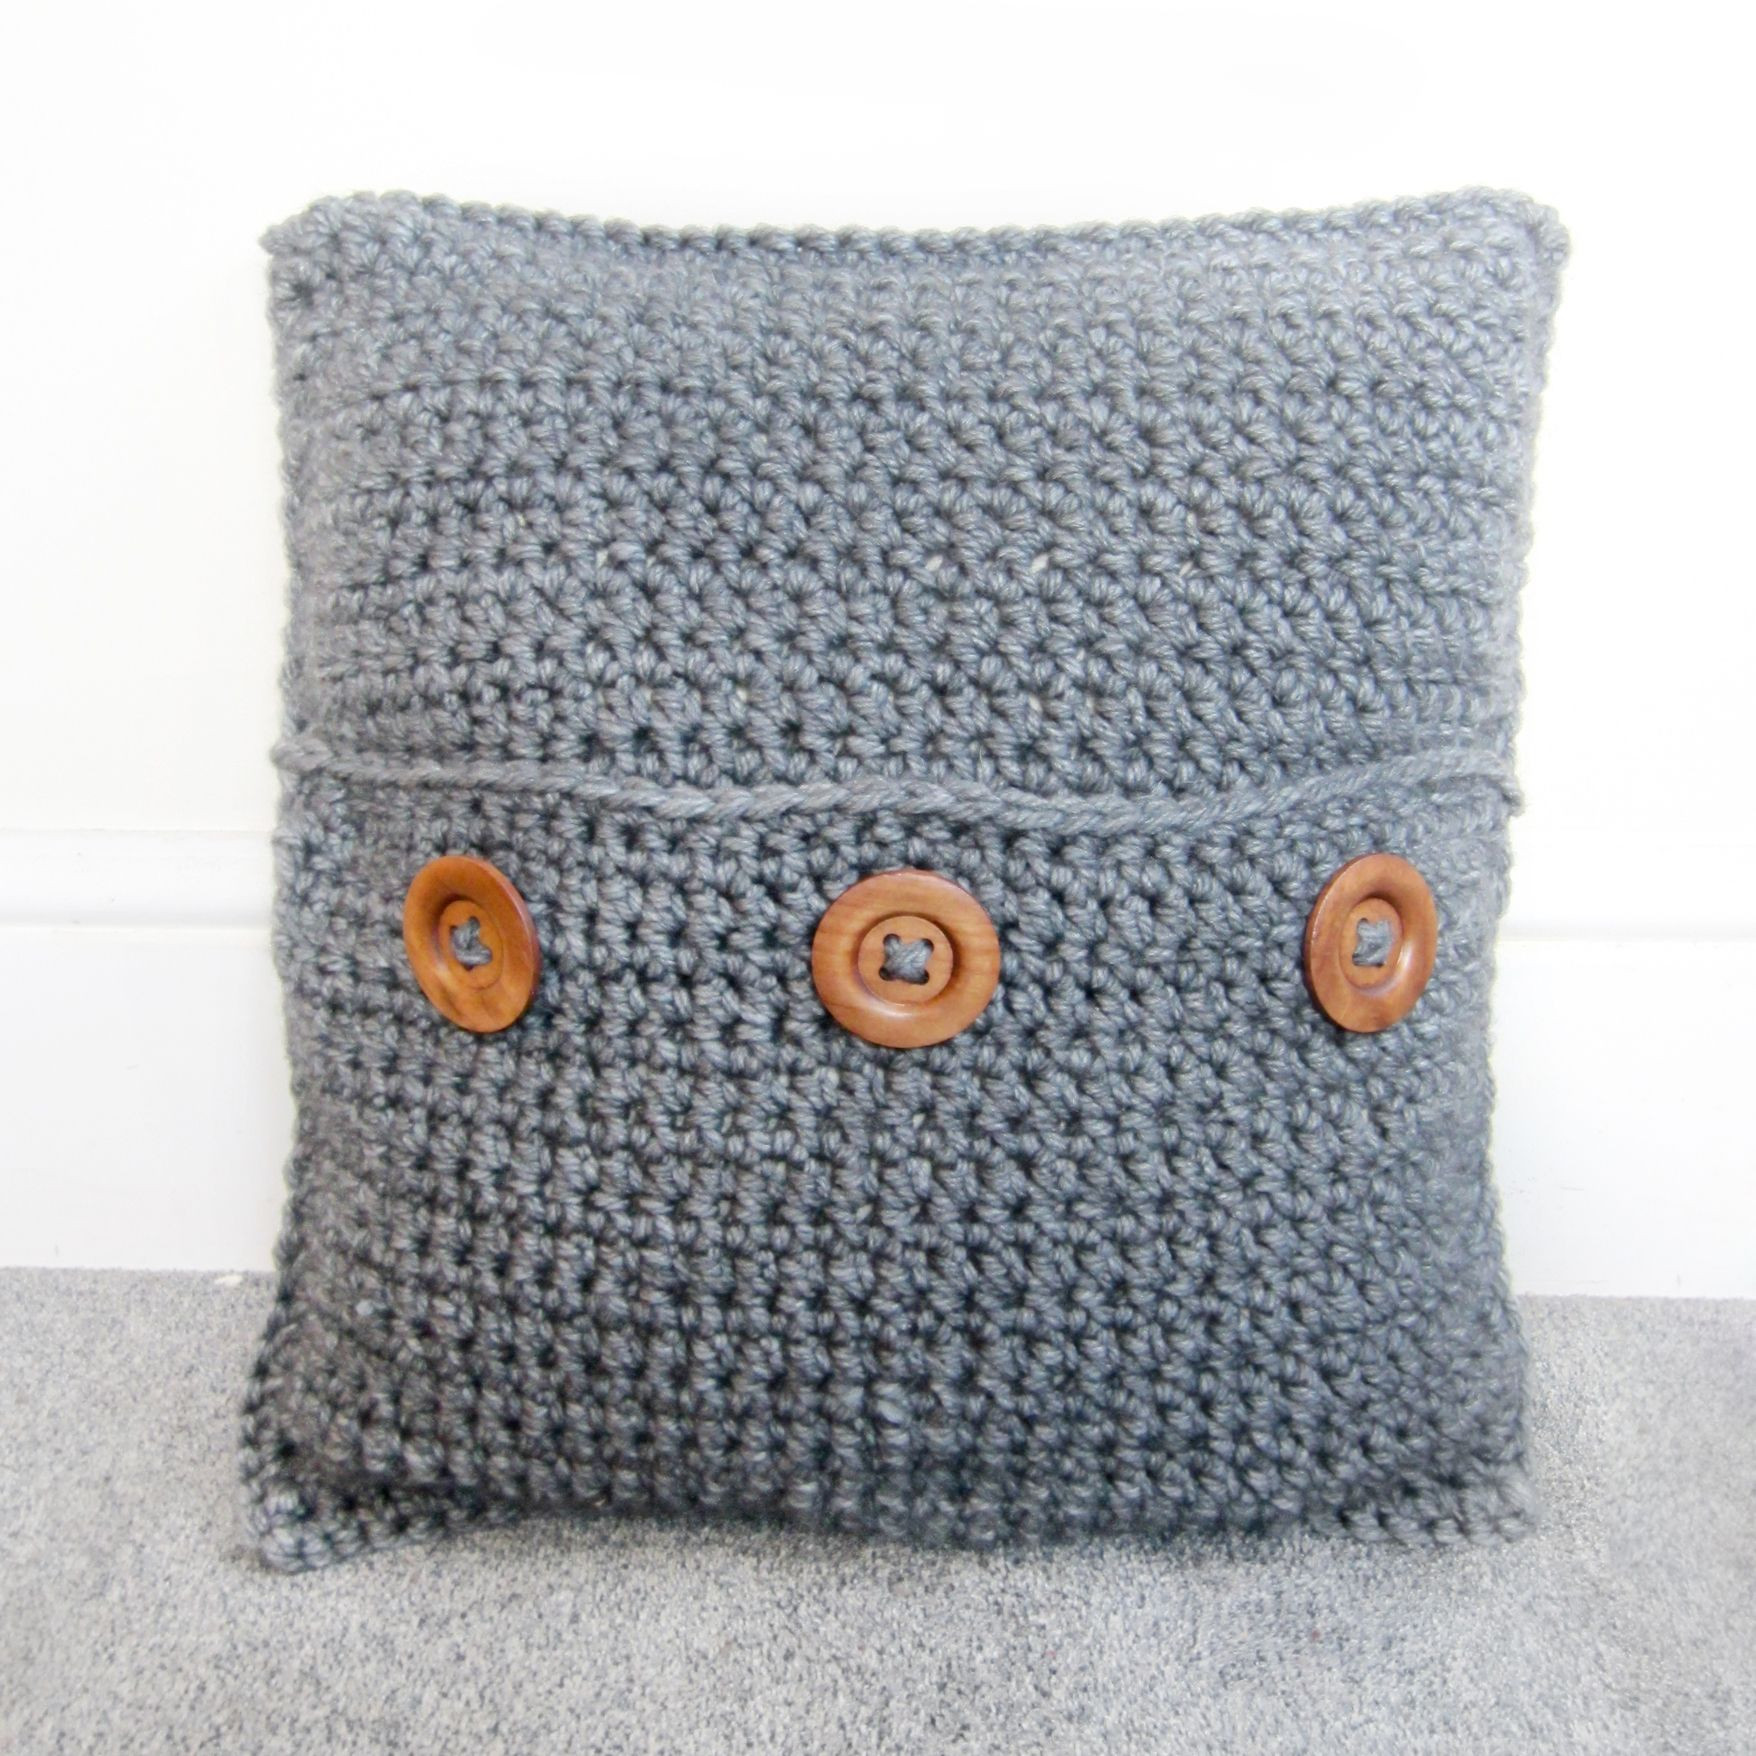 Crochet Pillow Cover Inspirational Chunky Crochet Cushion Fittex Bil Google Of Amazing 50 Pics Crochet Pillow Cover